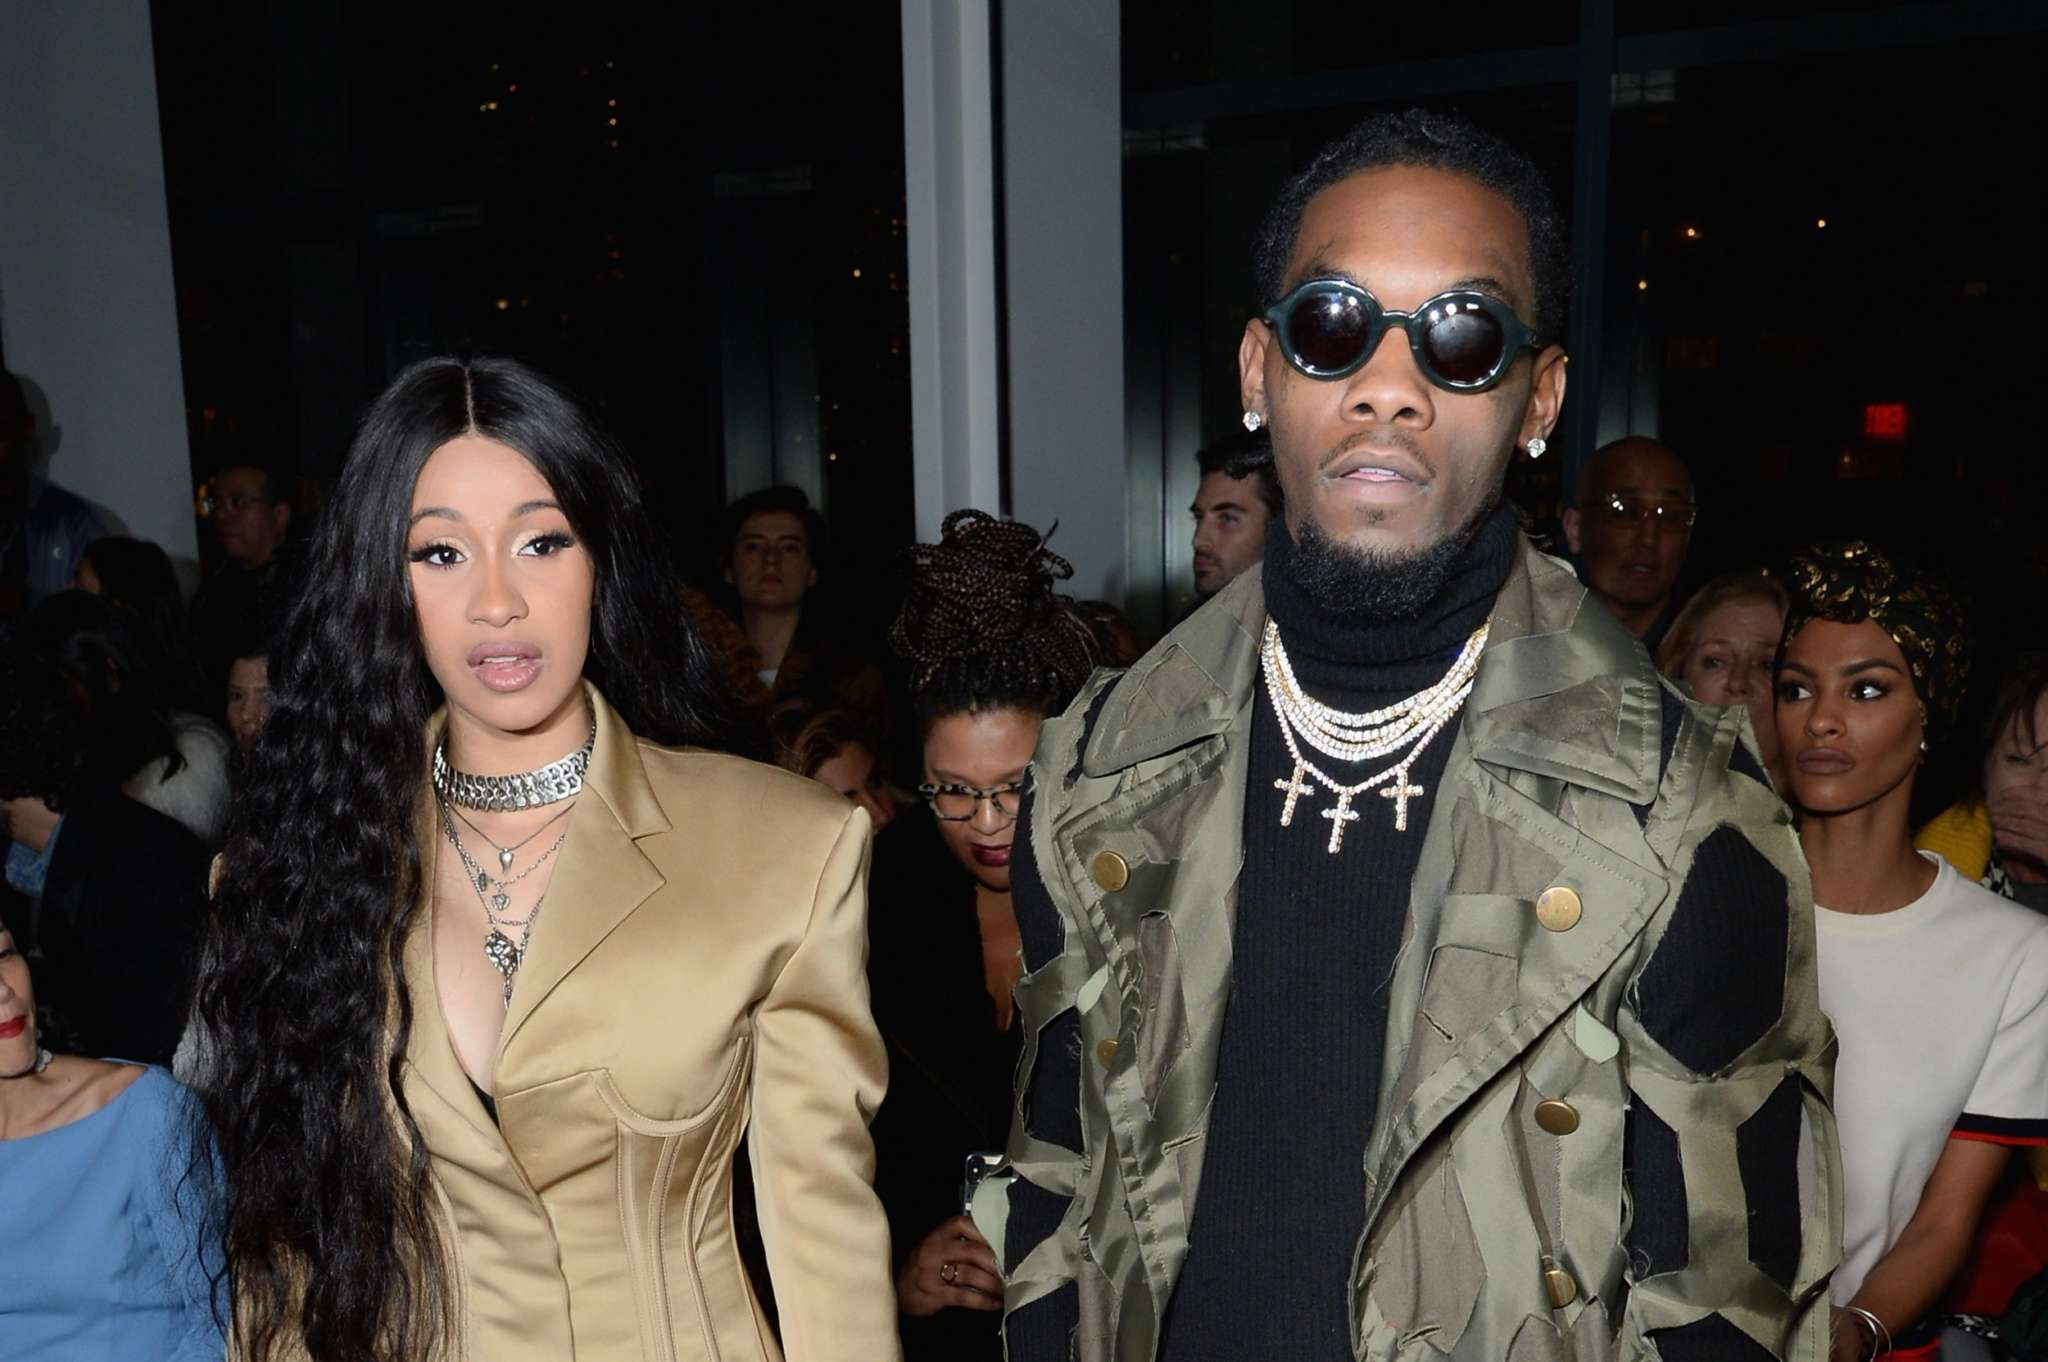 offset-addresses-new-cheating-accusations-after-fans-catch-him-hiding-phone-from-cardi-b